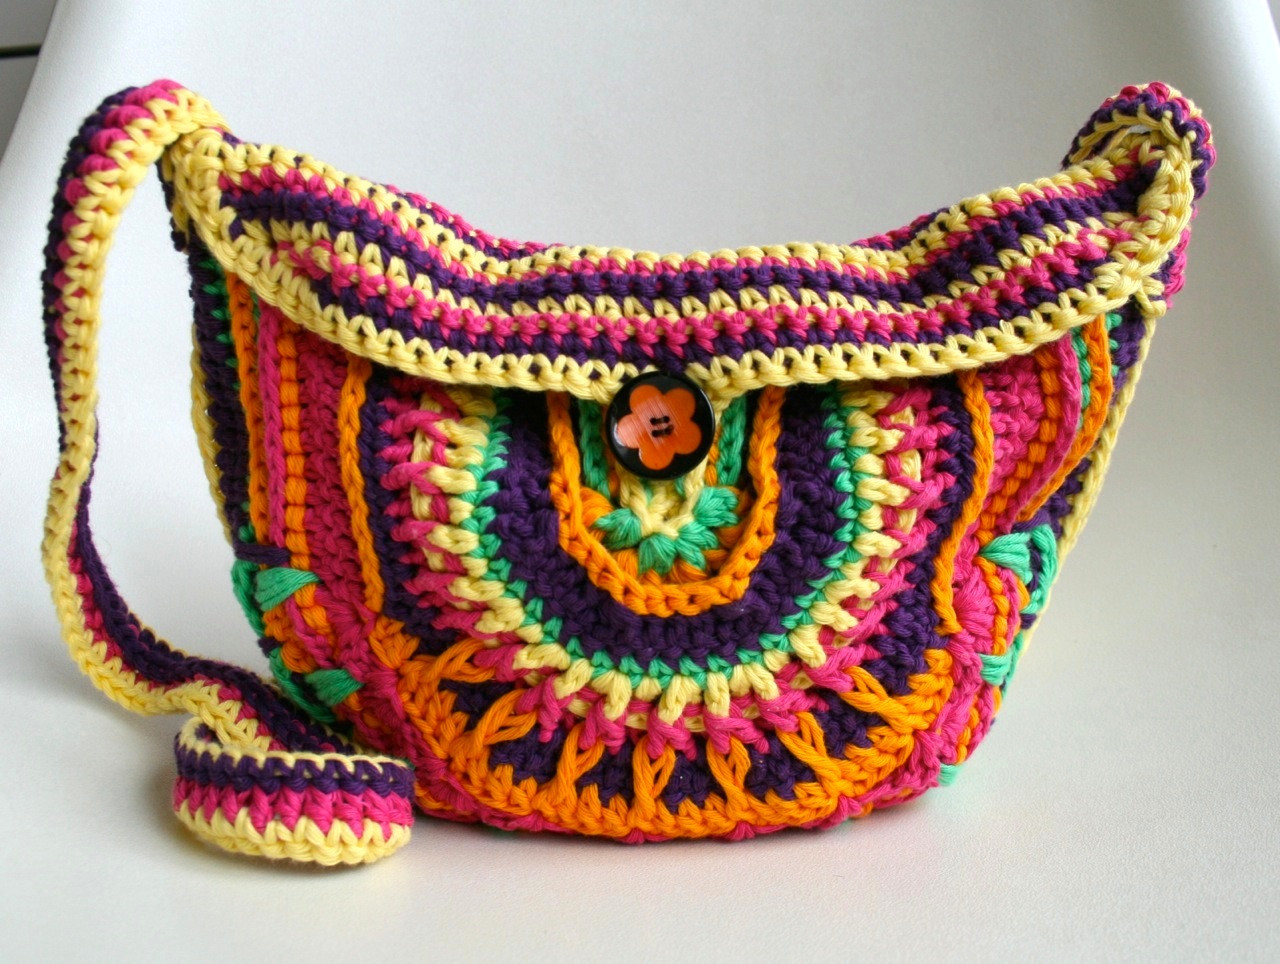 New Crochet Patterns Unique New Boho Crochet Purse Pattern and A New Collection Of Of Perfect 50 Ideas New Crochet Patterns